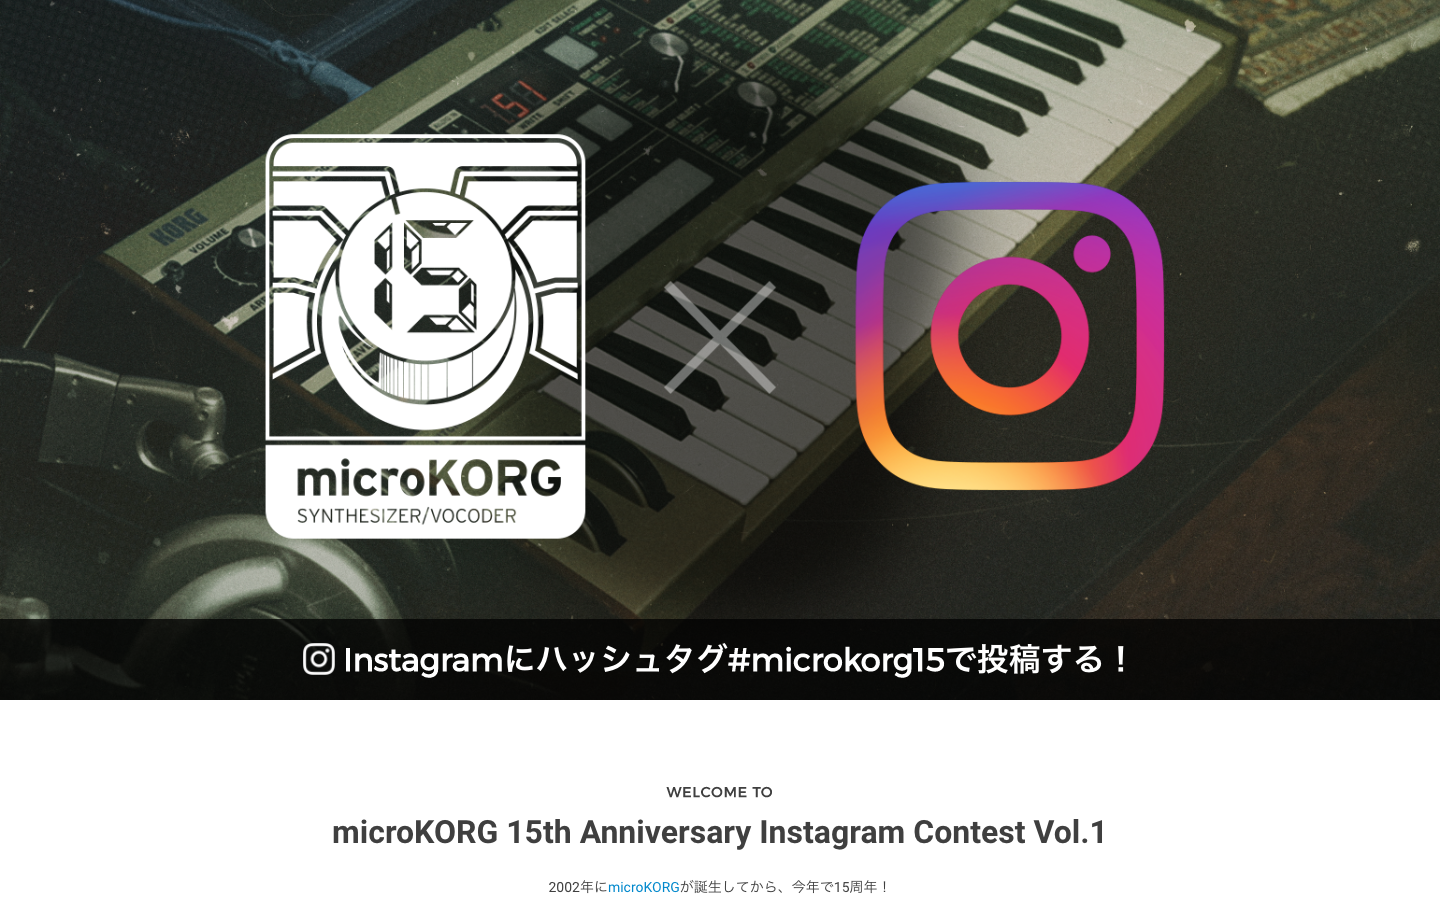 microKORG 15th Anniversary Instagram Contest Vol.1のイメージ